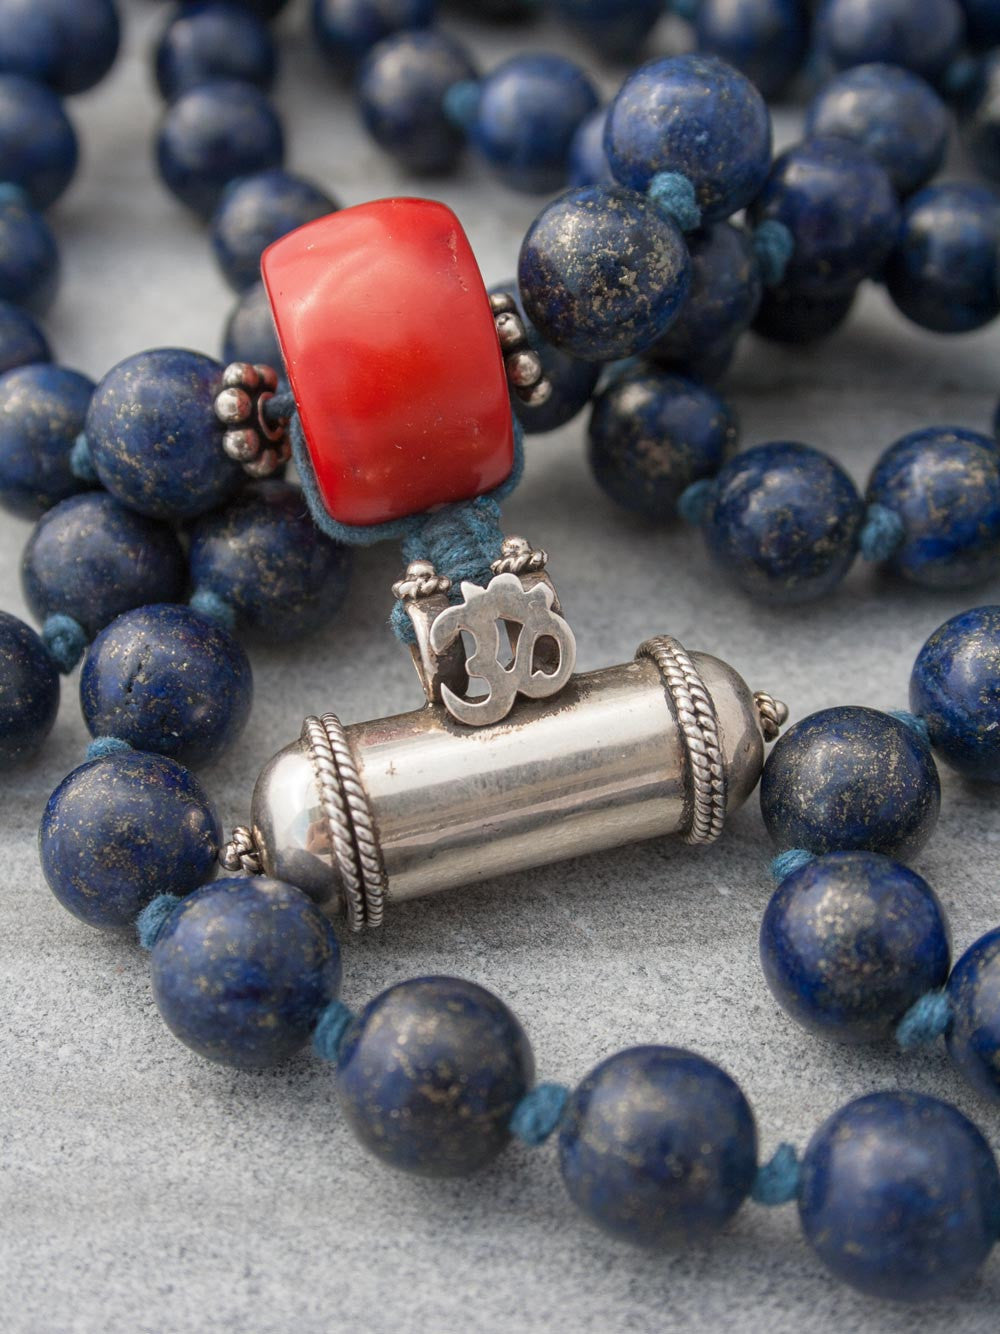 Unstruck Om Mala, for meditation and awareness, in 12mm Lapis Lazuli, has a stunning coral Guru bead and silver Mantra talisman: Guru bead and talisman view.